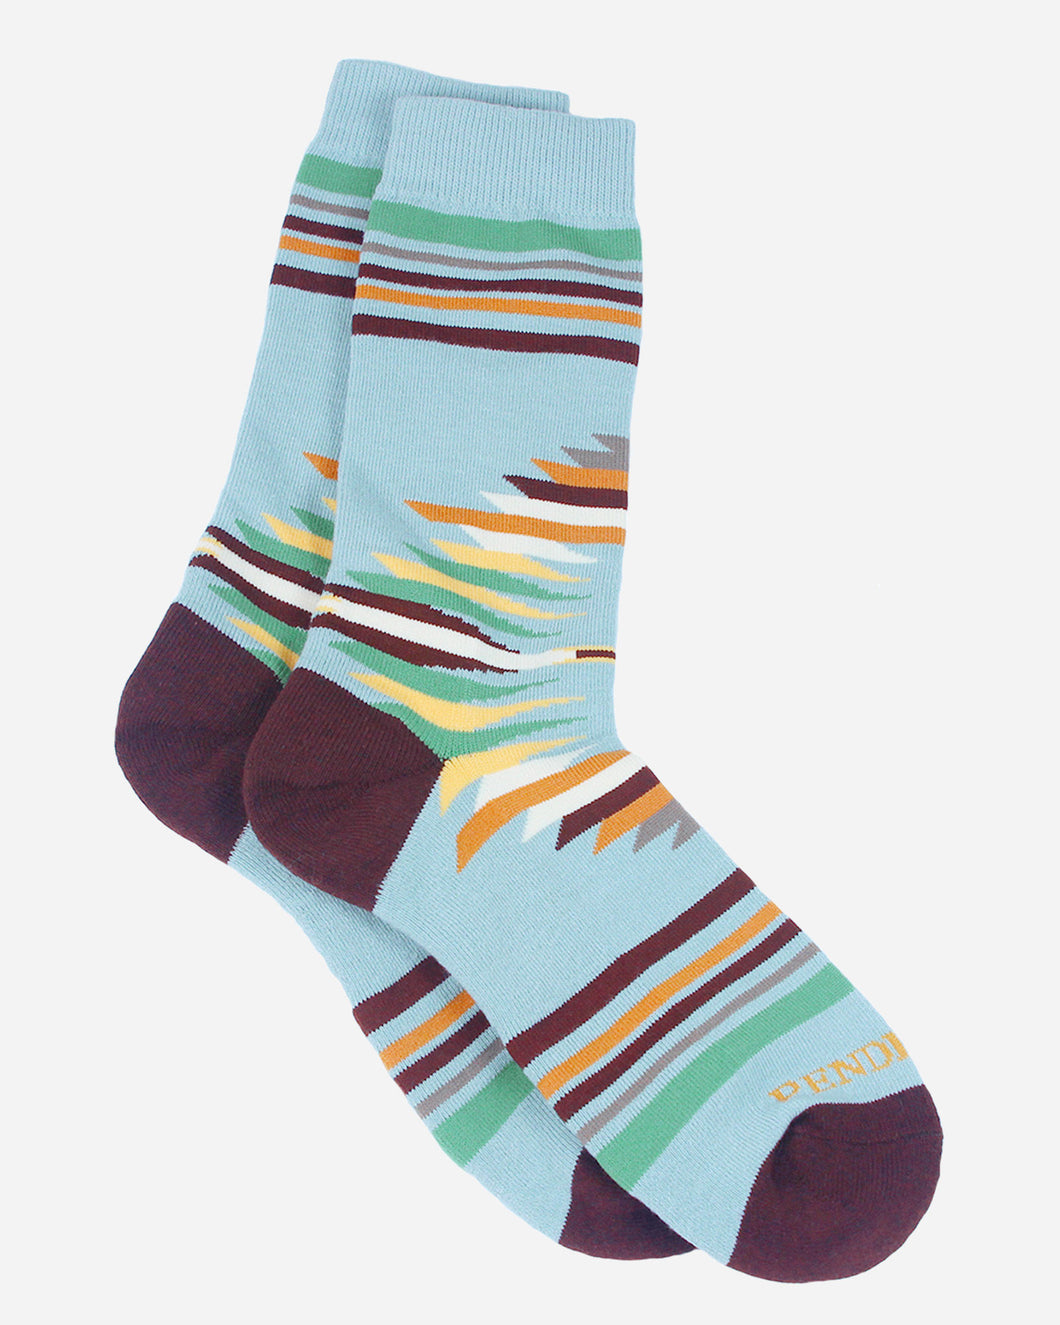 Pendleton Turquoise Falcon Cove Socks